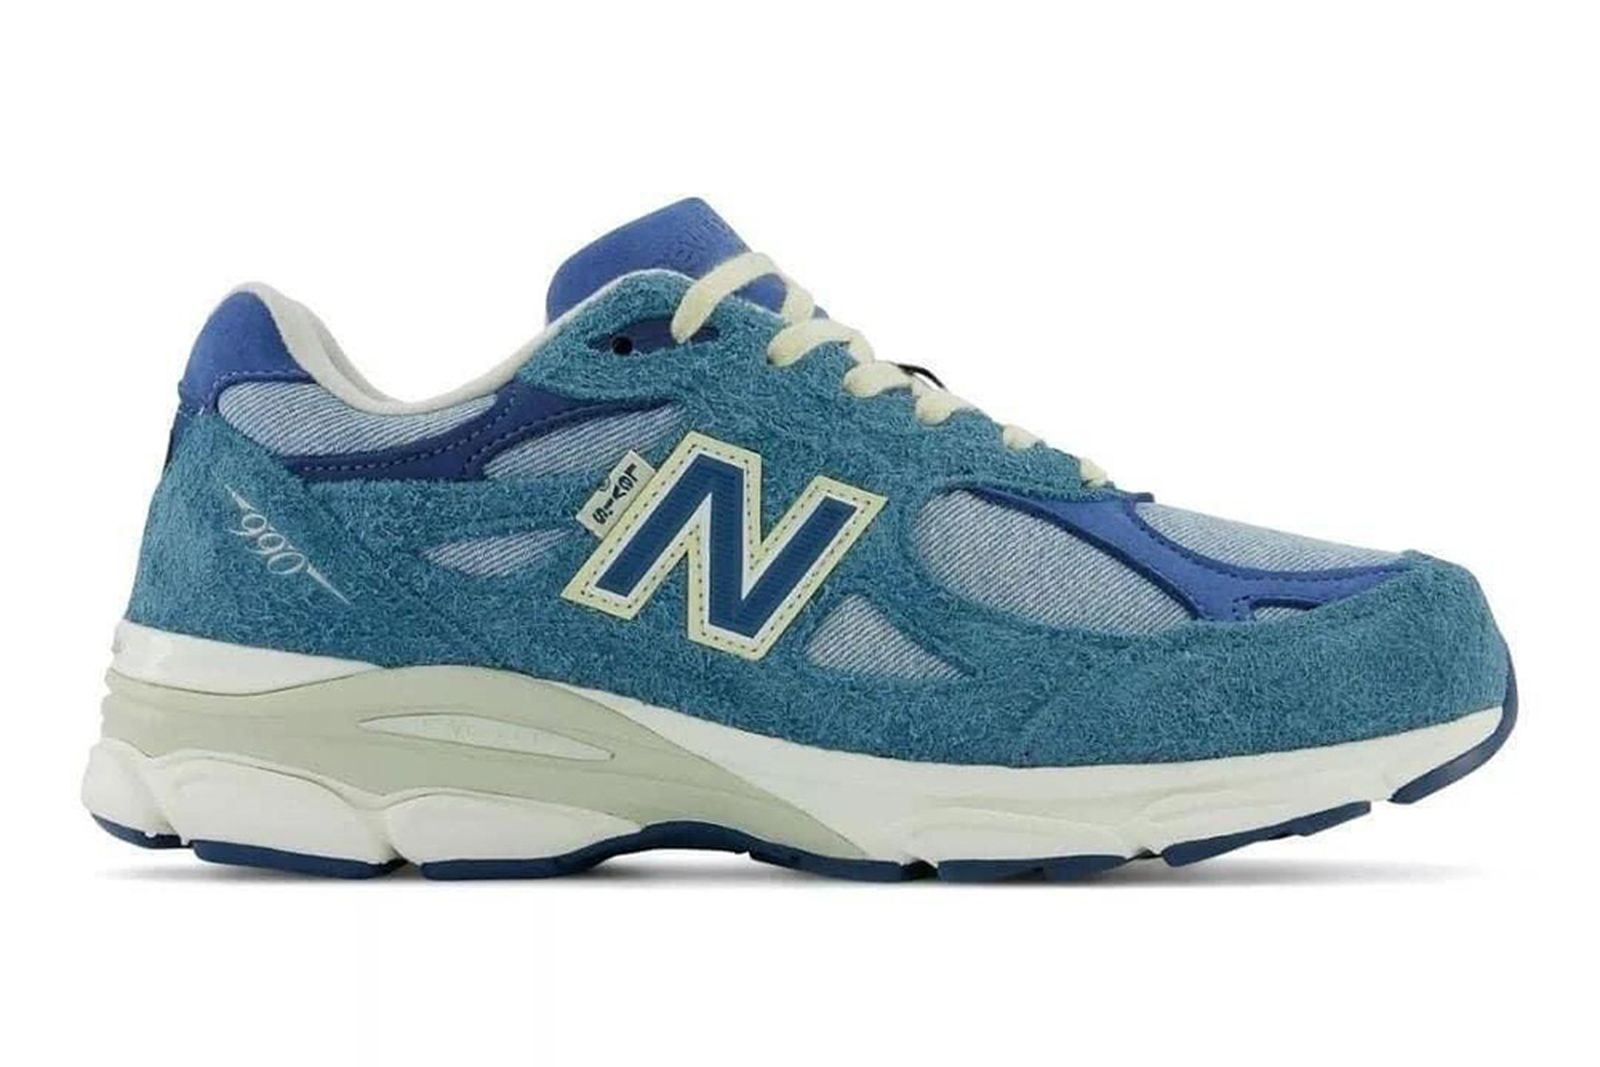 levis-new-balance-990v3-release-date-price-02